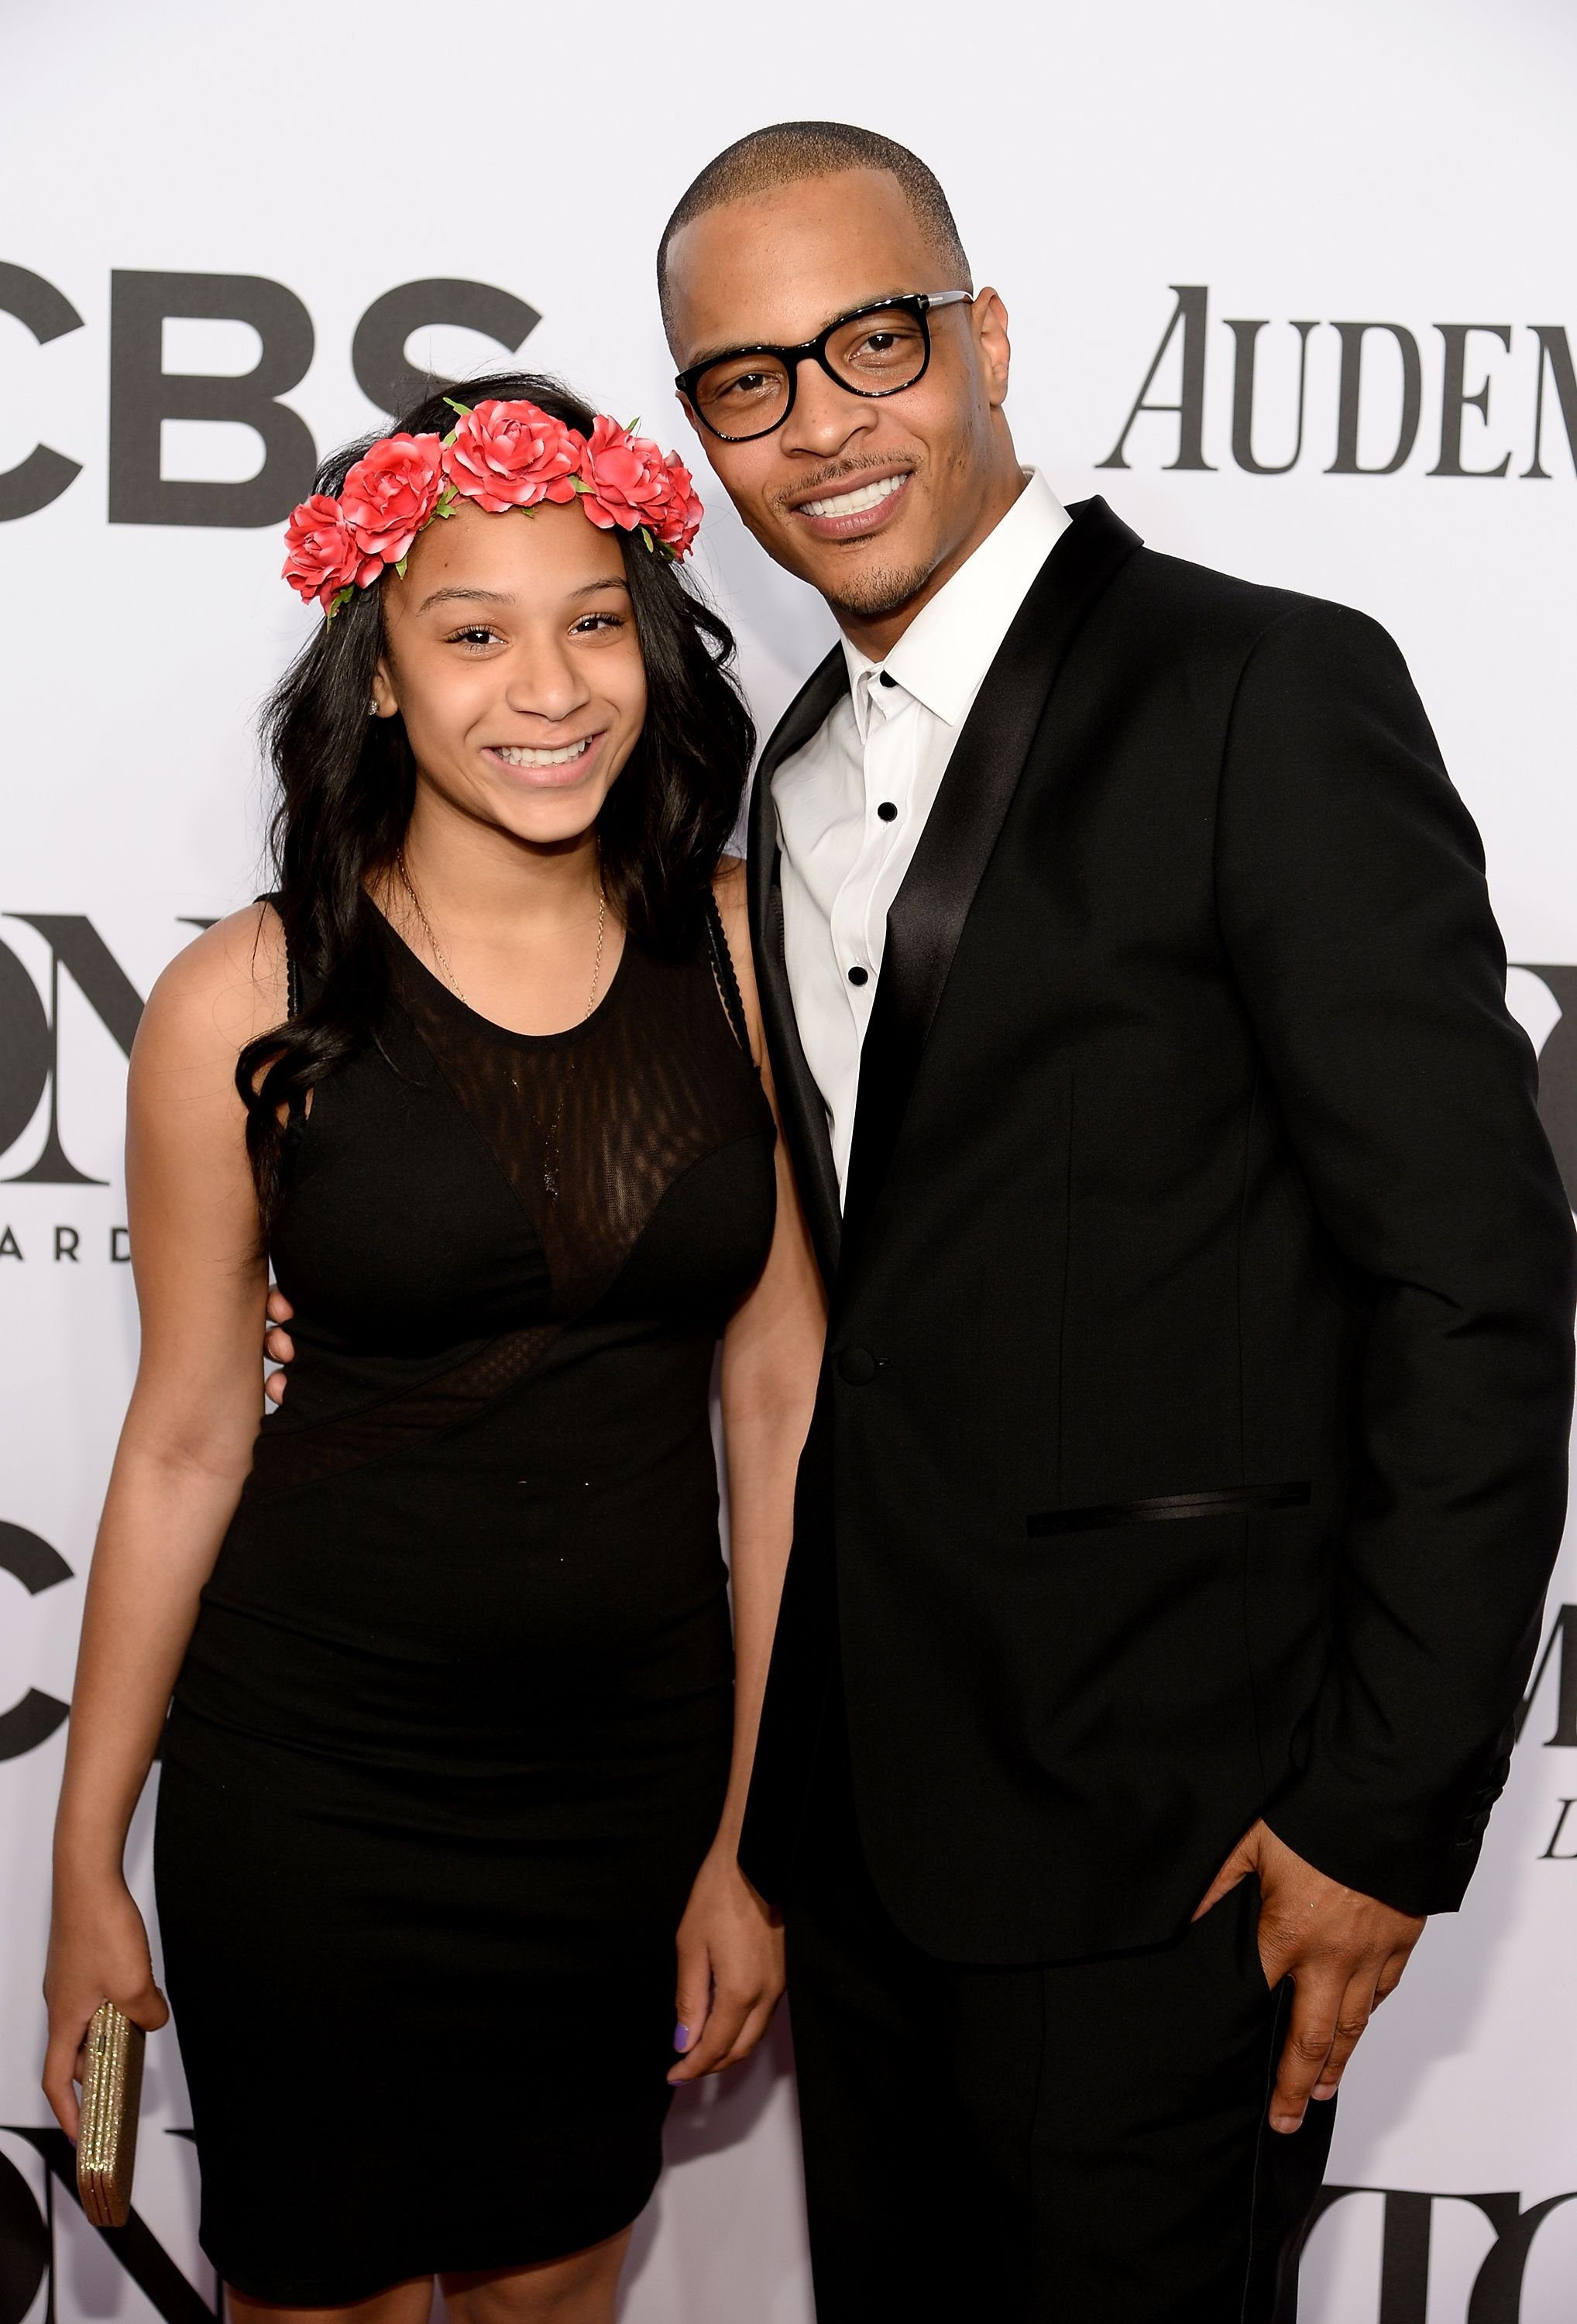 T.I. Harris and daughter Deyjah at the 68th Annual Tony Awards in 2014 in New York City | Source: Getty Images